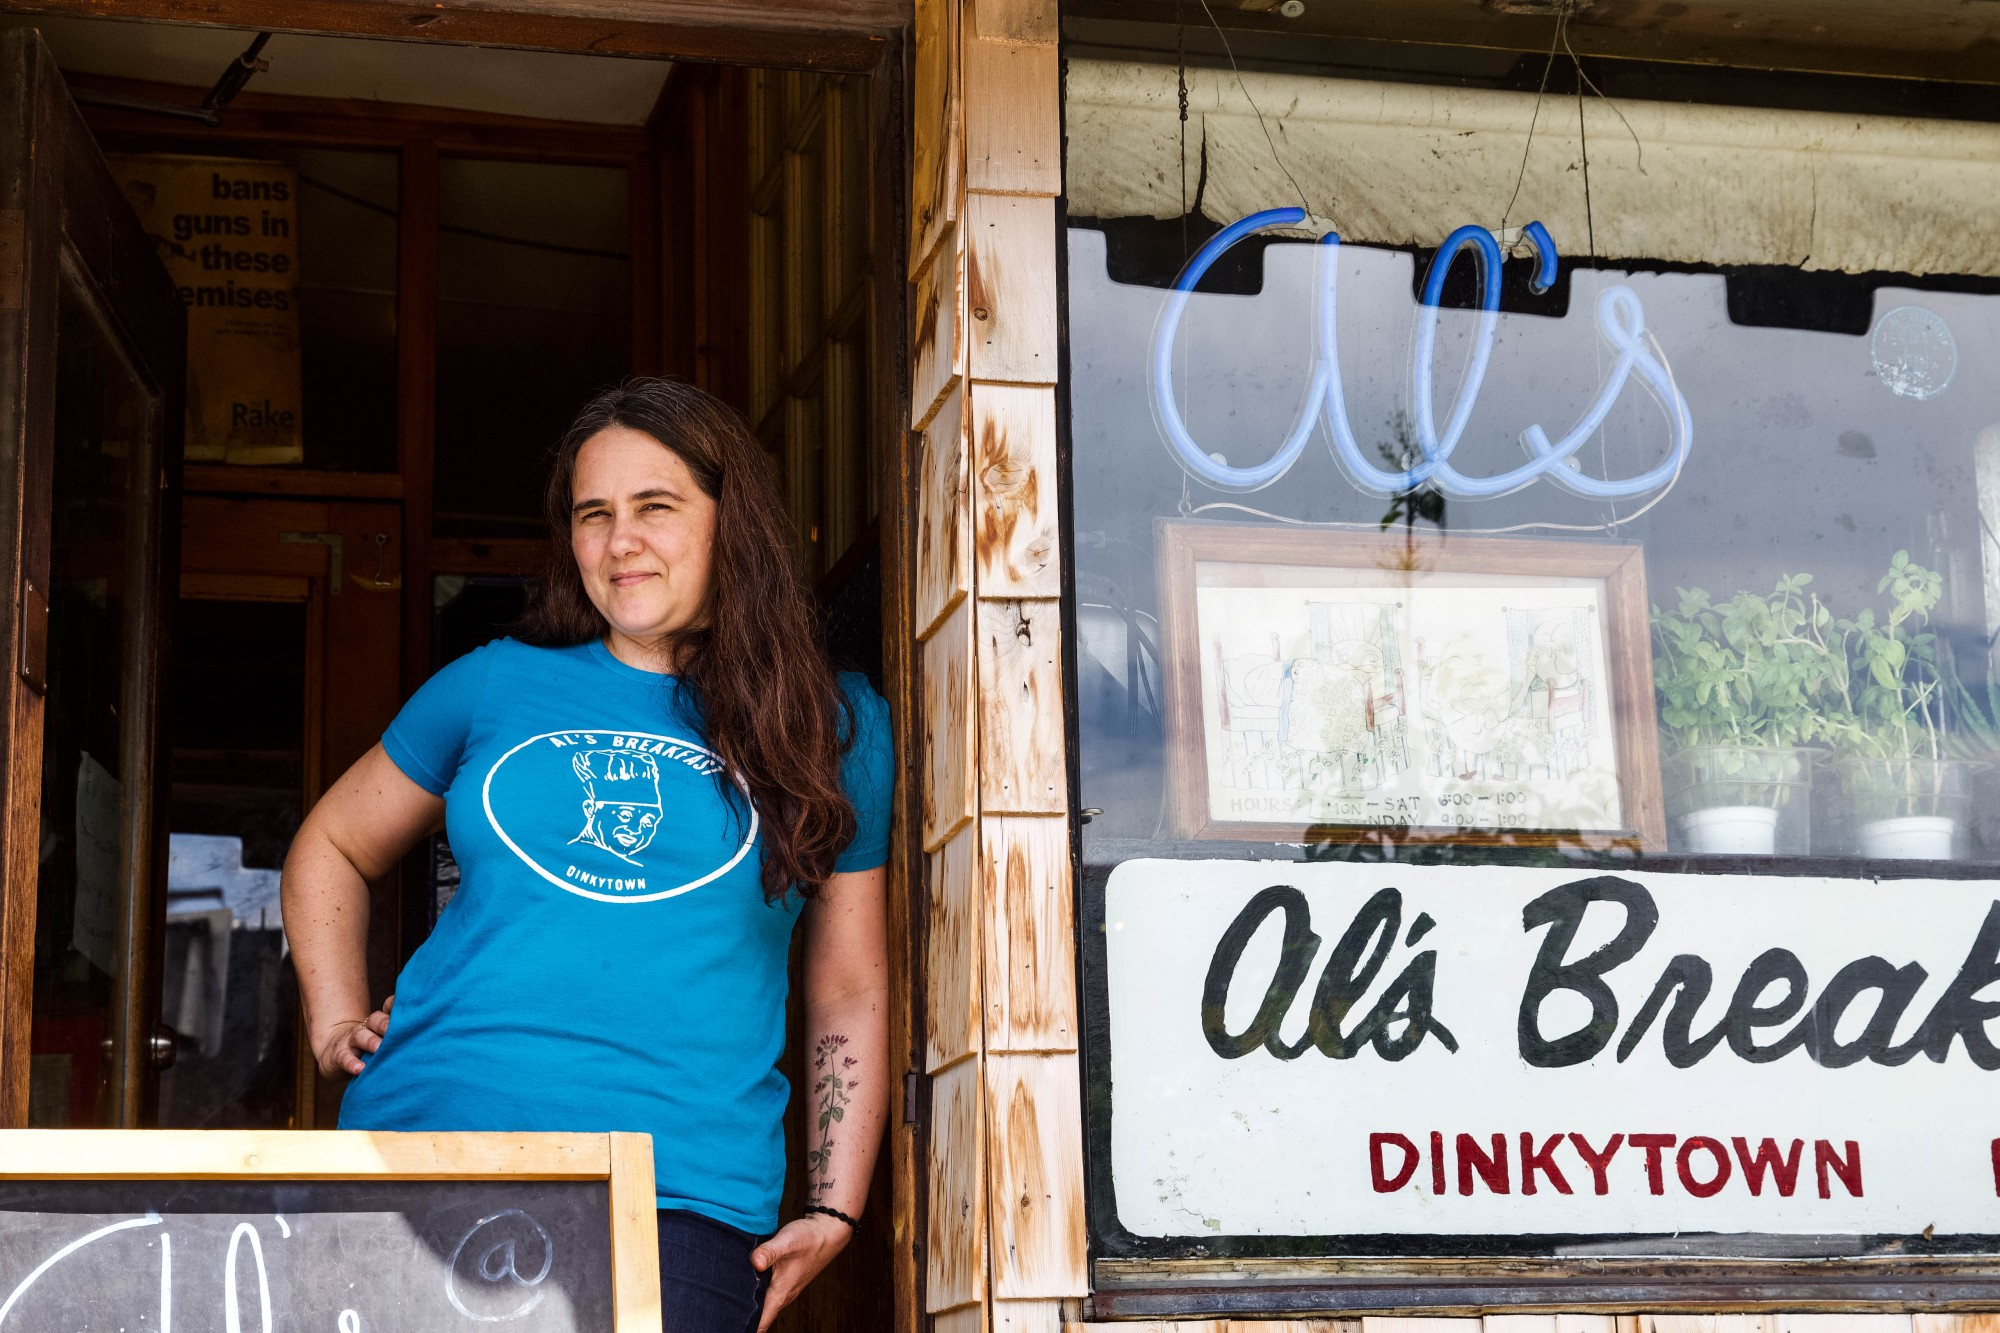 Alison Kirwin, owner of Al's Breakfast, poses for a portrait in front of the restaurant in Dinkytown on Wednesday, July 1.